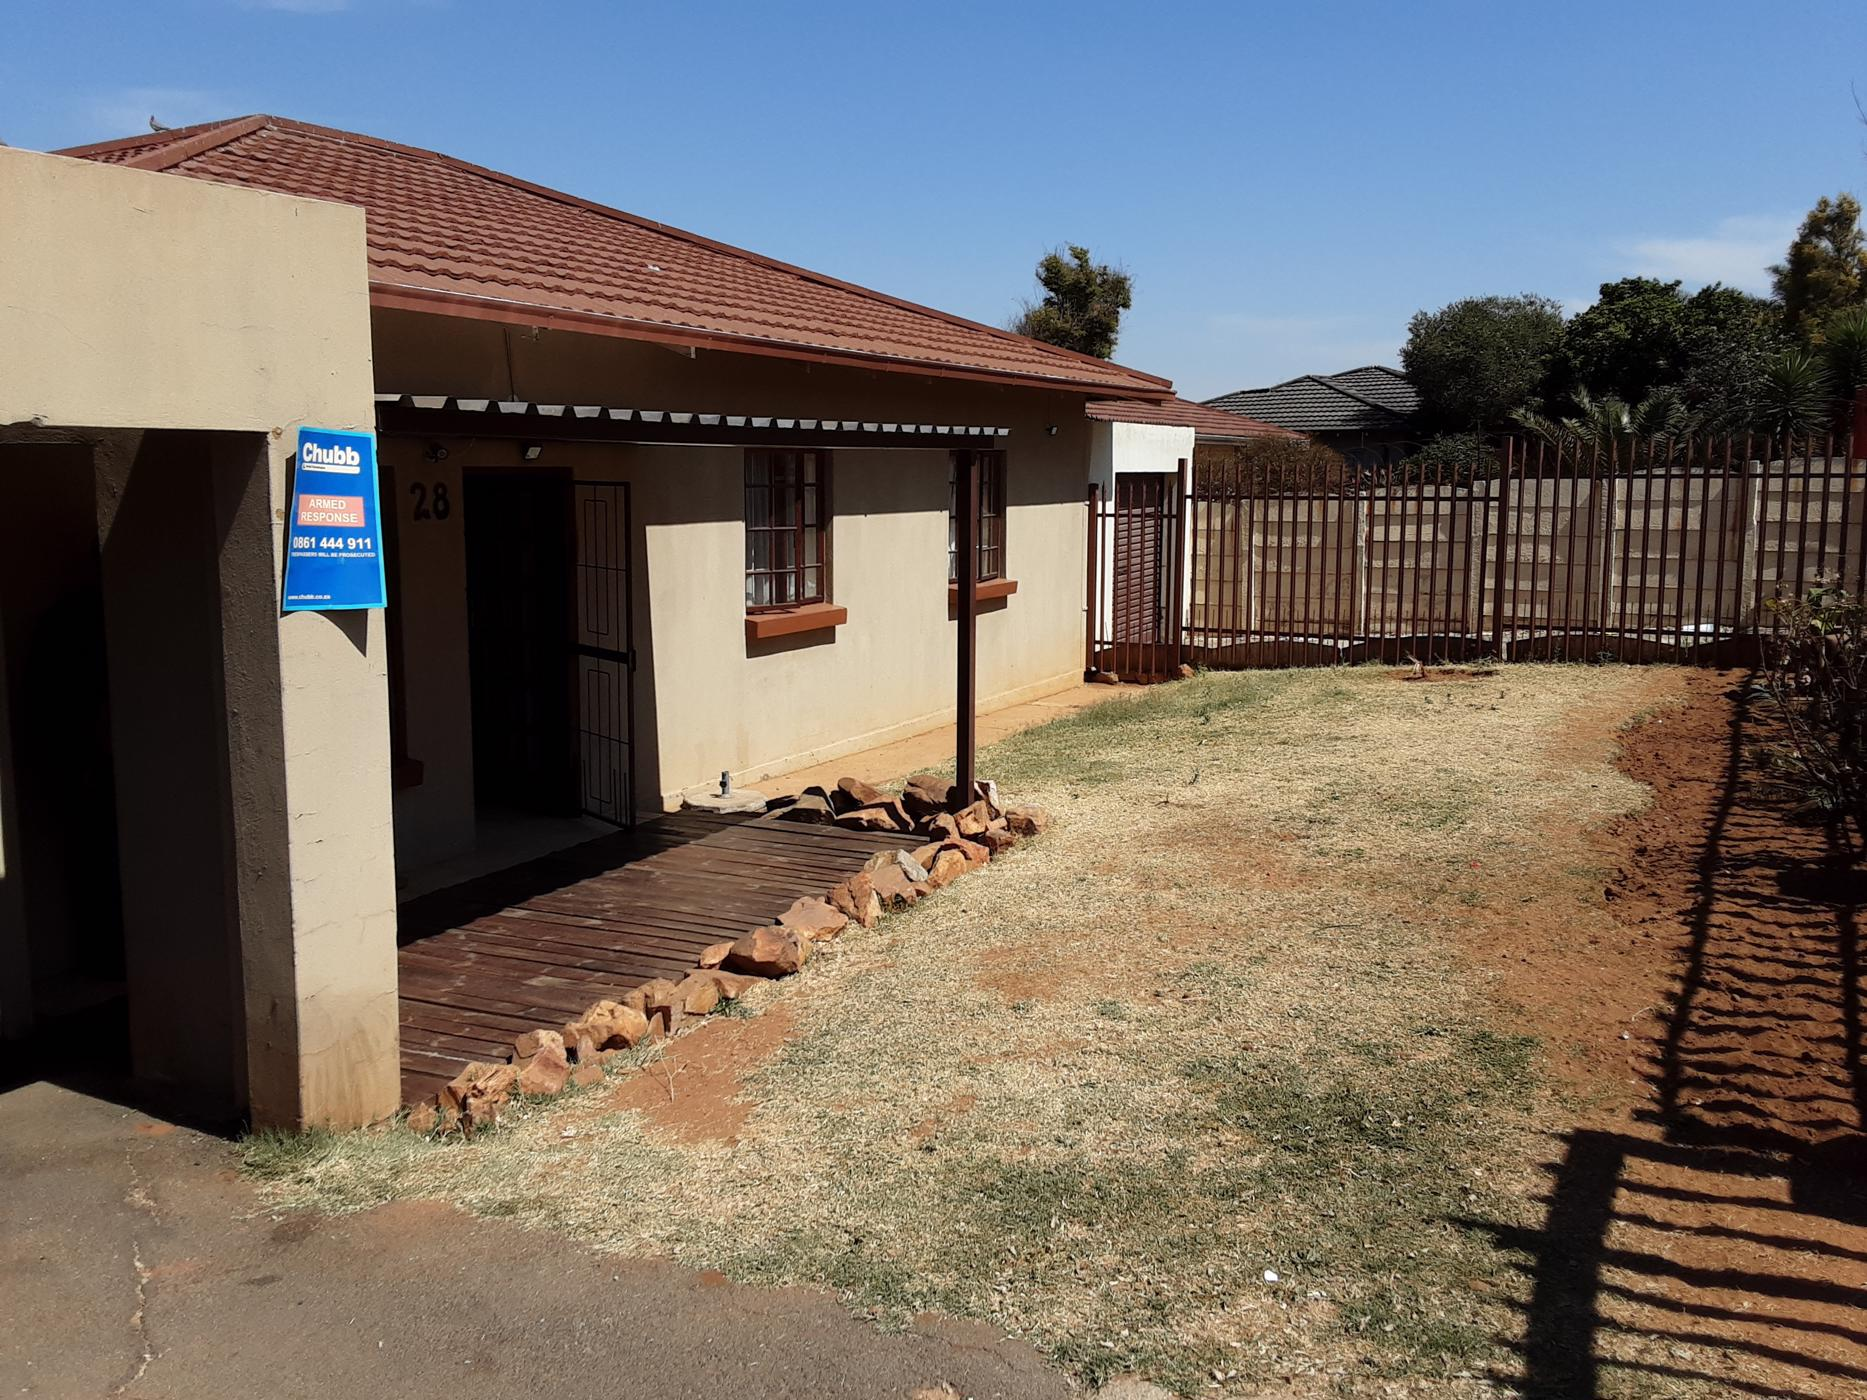 https://listing.pamgolding.co.za/images/properties/201909/1509689/H/1509689_H_1.jpg